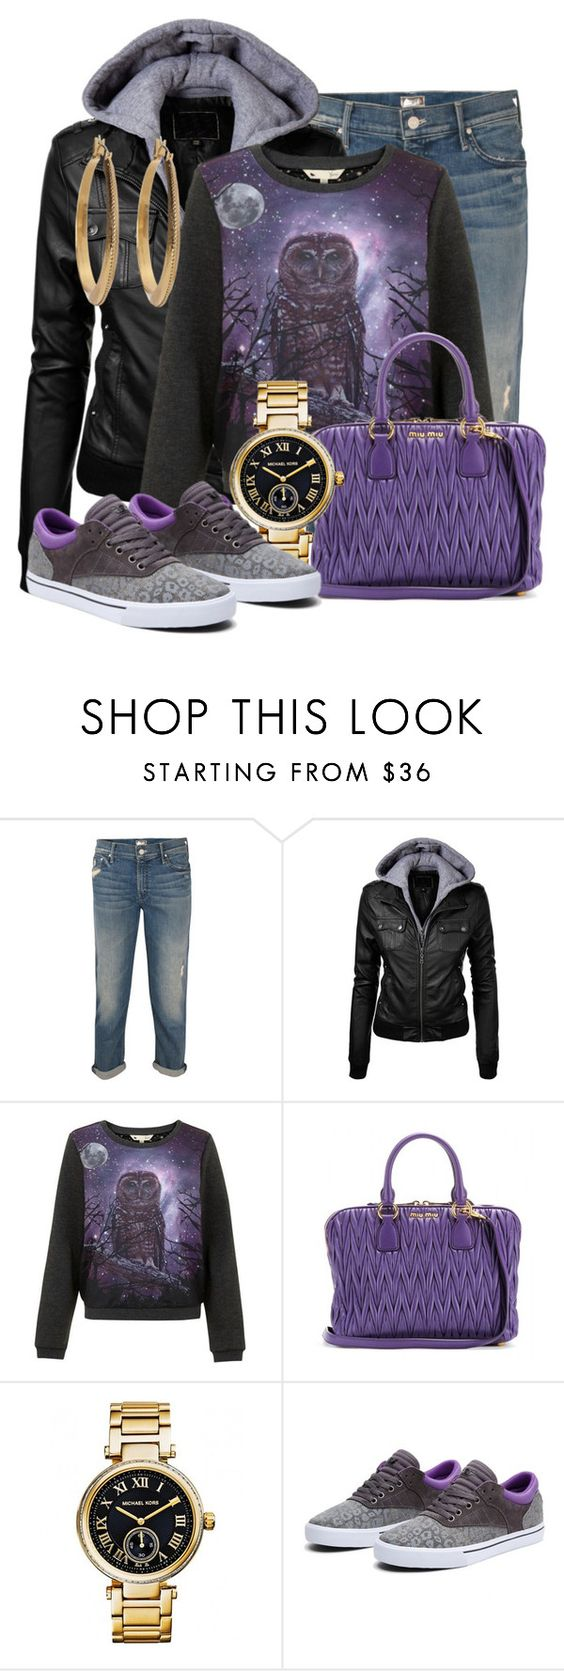 """""""Hooty Who!?"""" by xx8763xx ❤ liked on Polyvore featuring Mother, Lipsy, Miu Miu, Michael Kors and Lauren Ralph Lauren"""